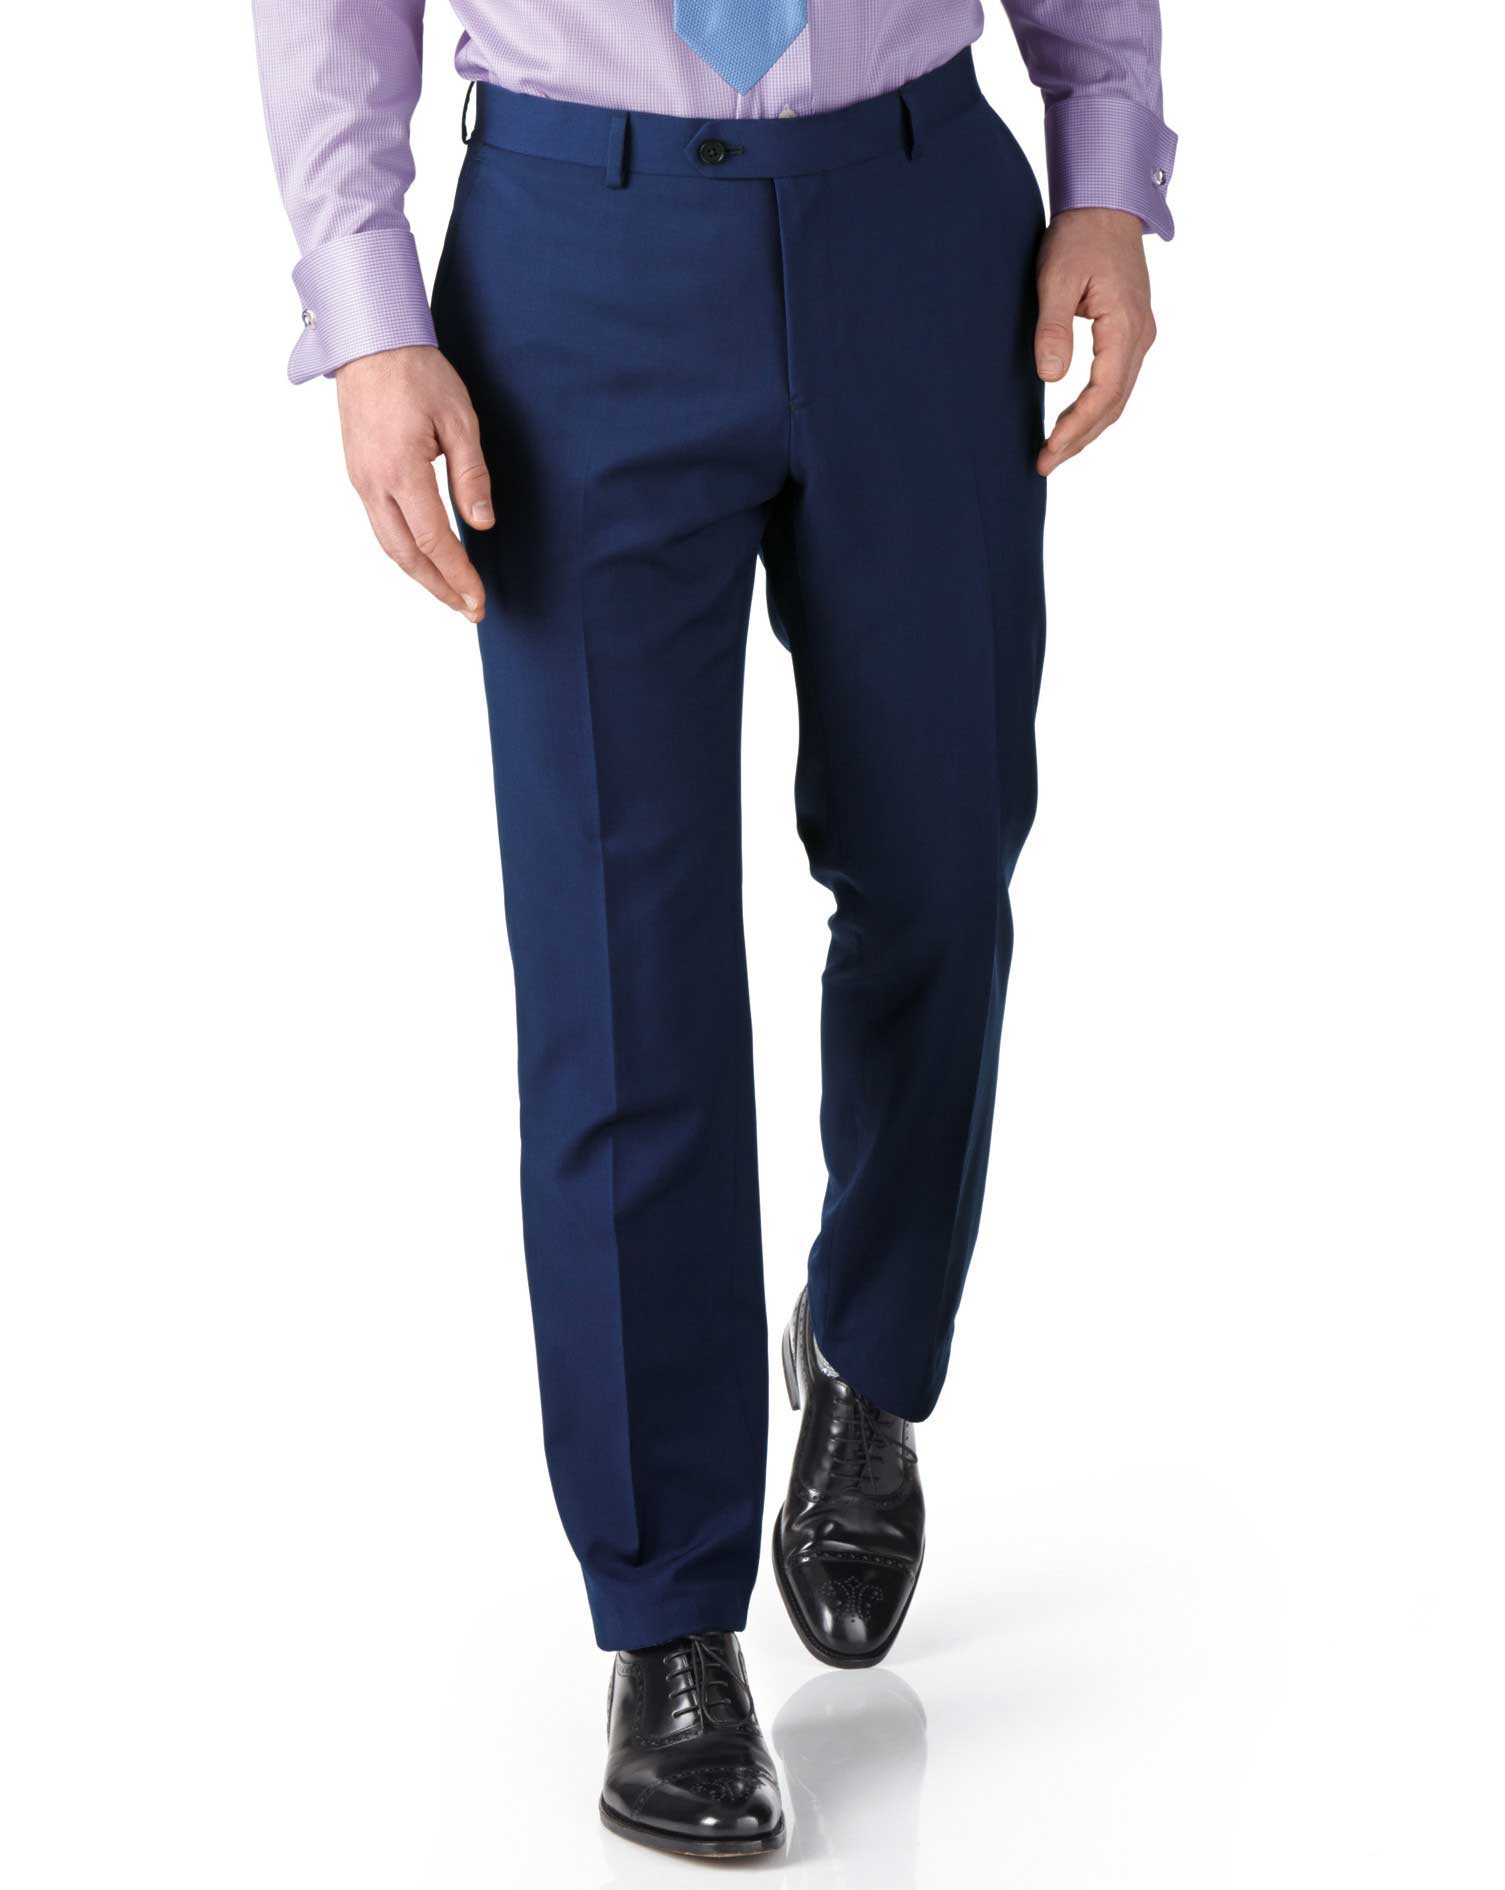 Royal Blue Slim Fit Twill Business Suit Trouser Size W38 L34 by Charles Tyrwhitt